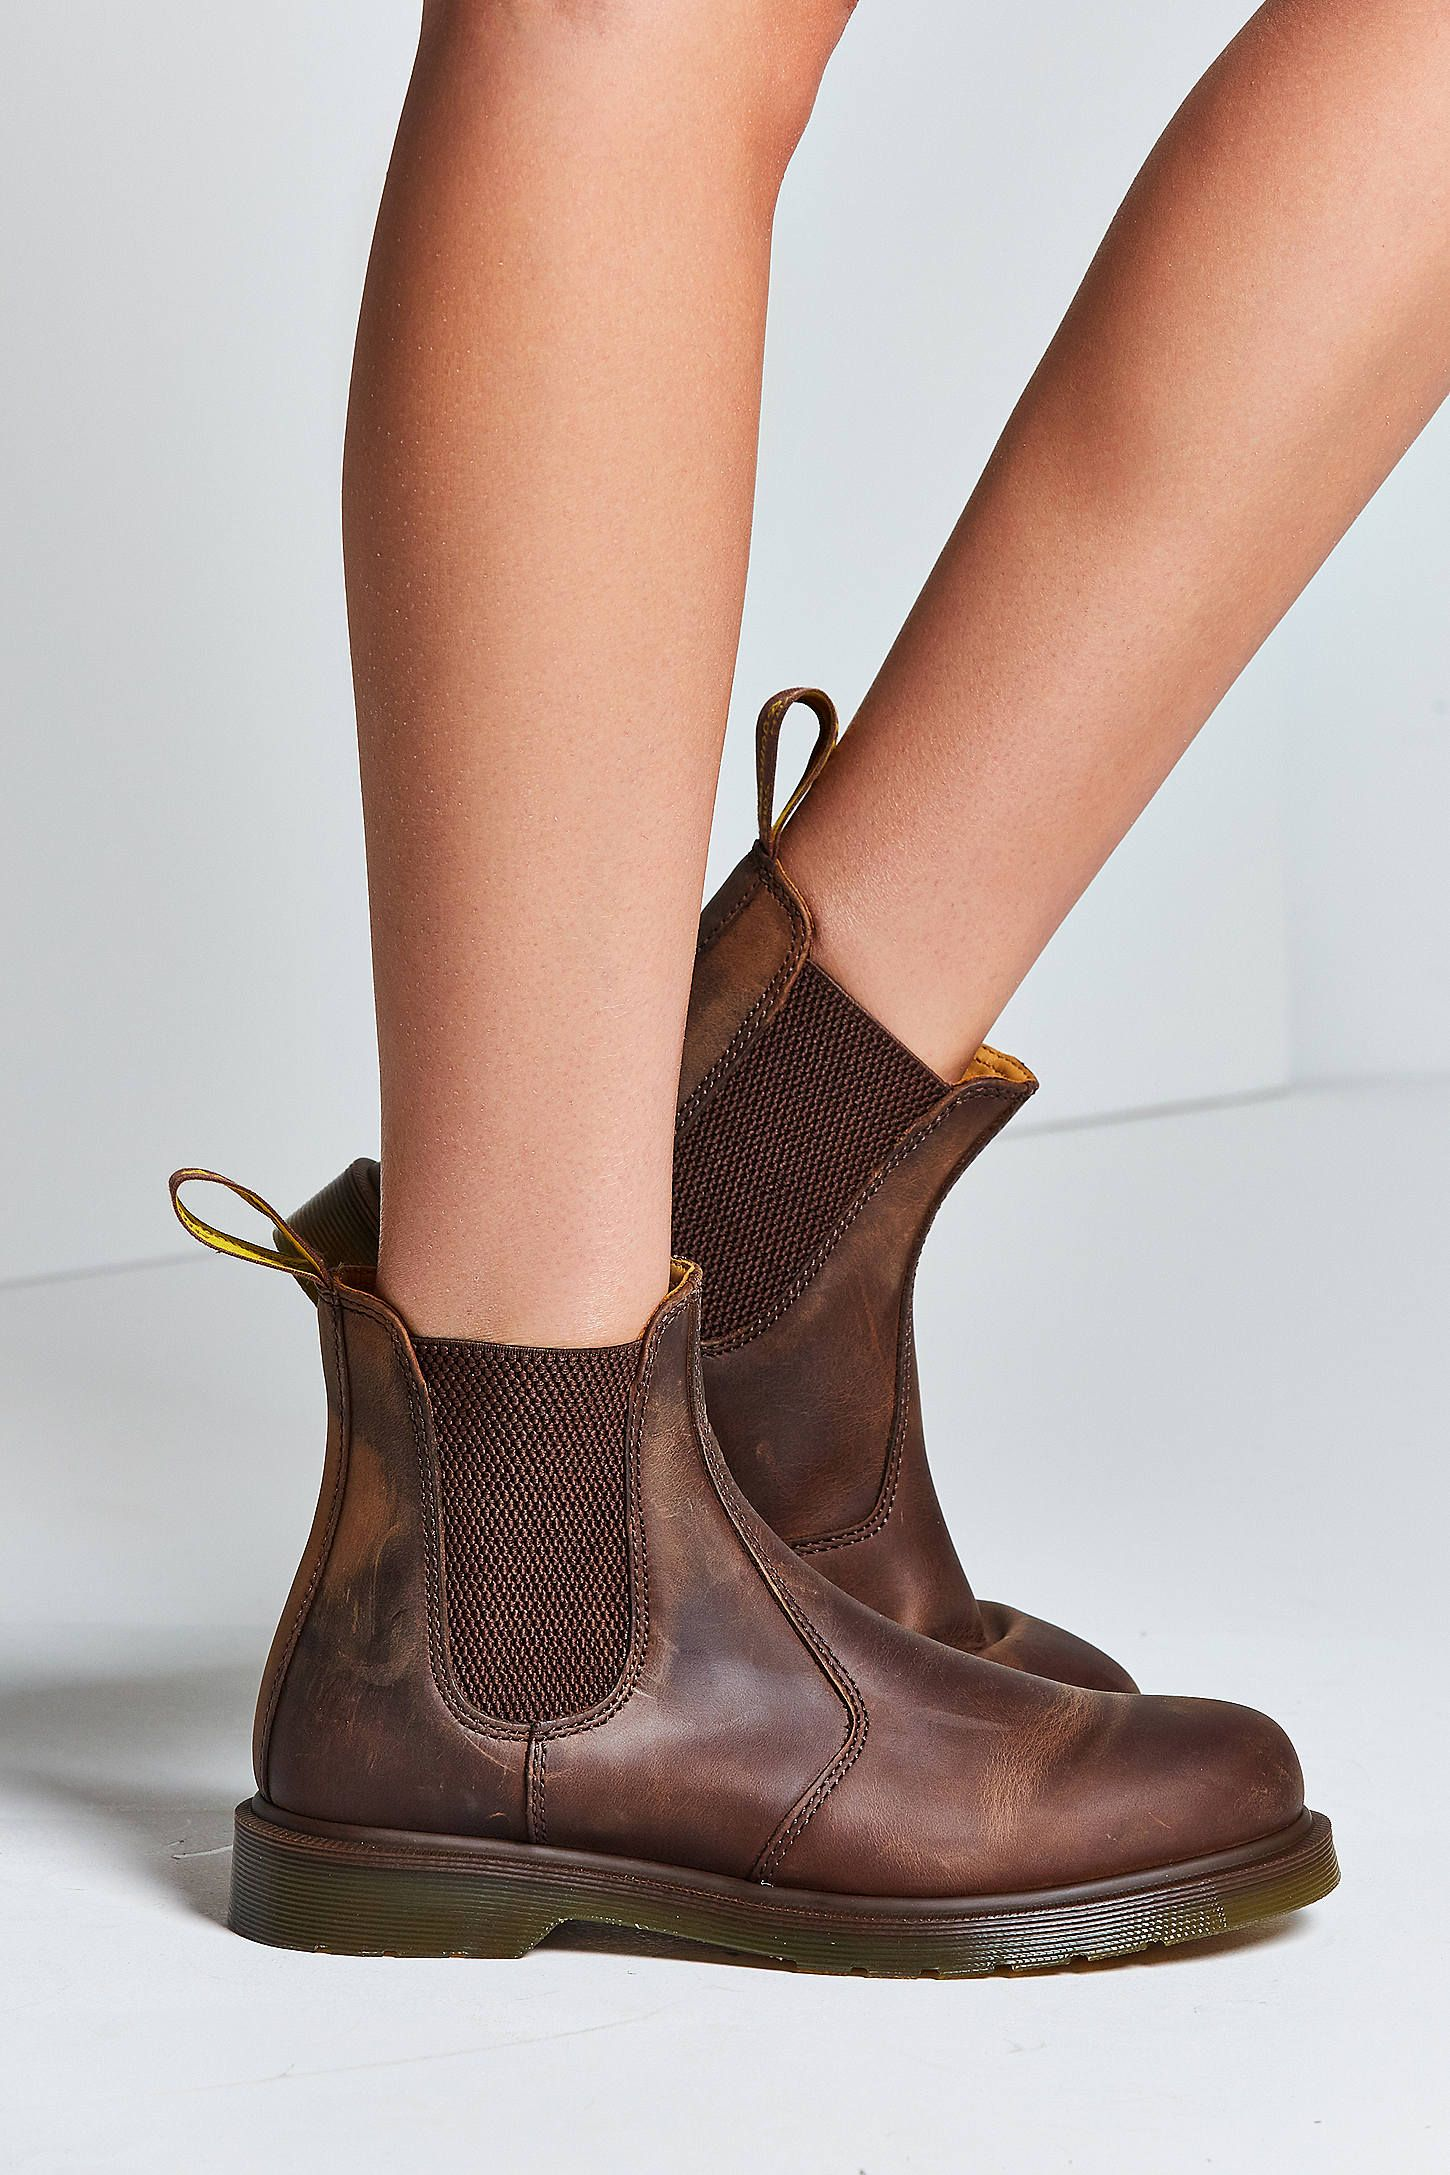 70e34d1f8c0b Shop Dr. Martens 2976 Crazy Horse Chelsea Boot at Urban Outfitters today.  We carry all the latest styles